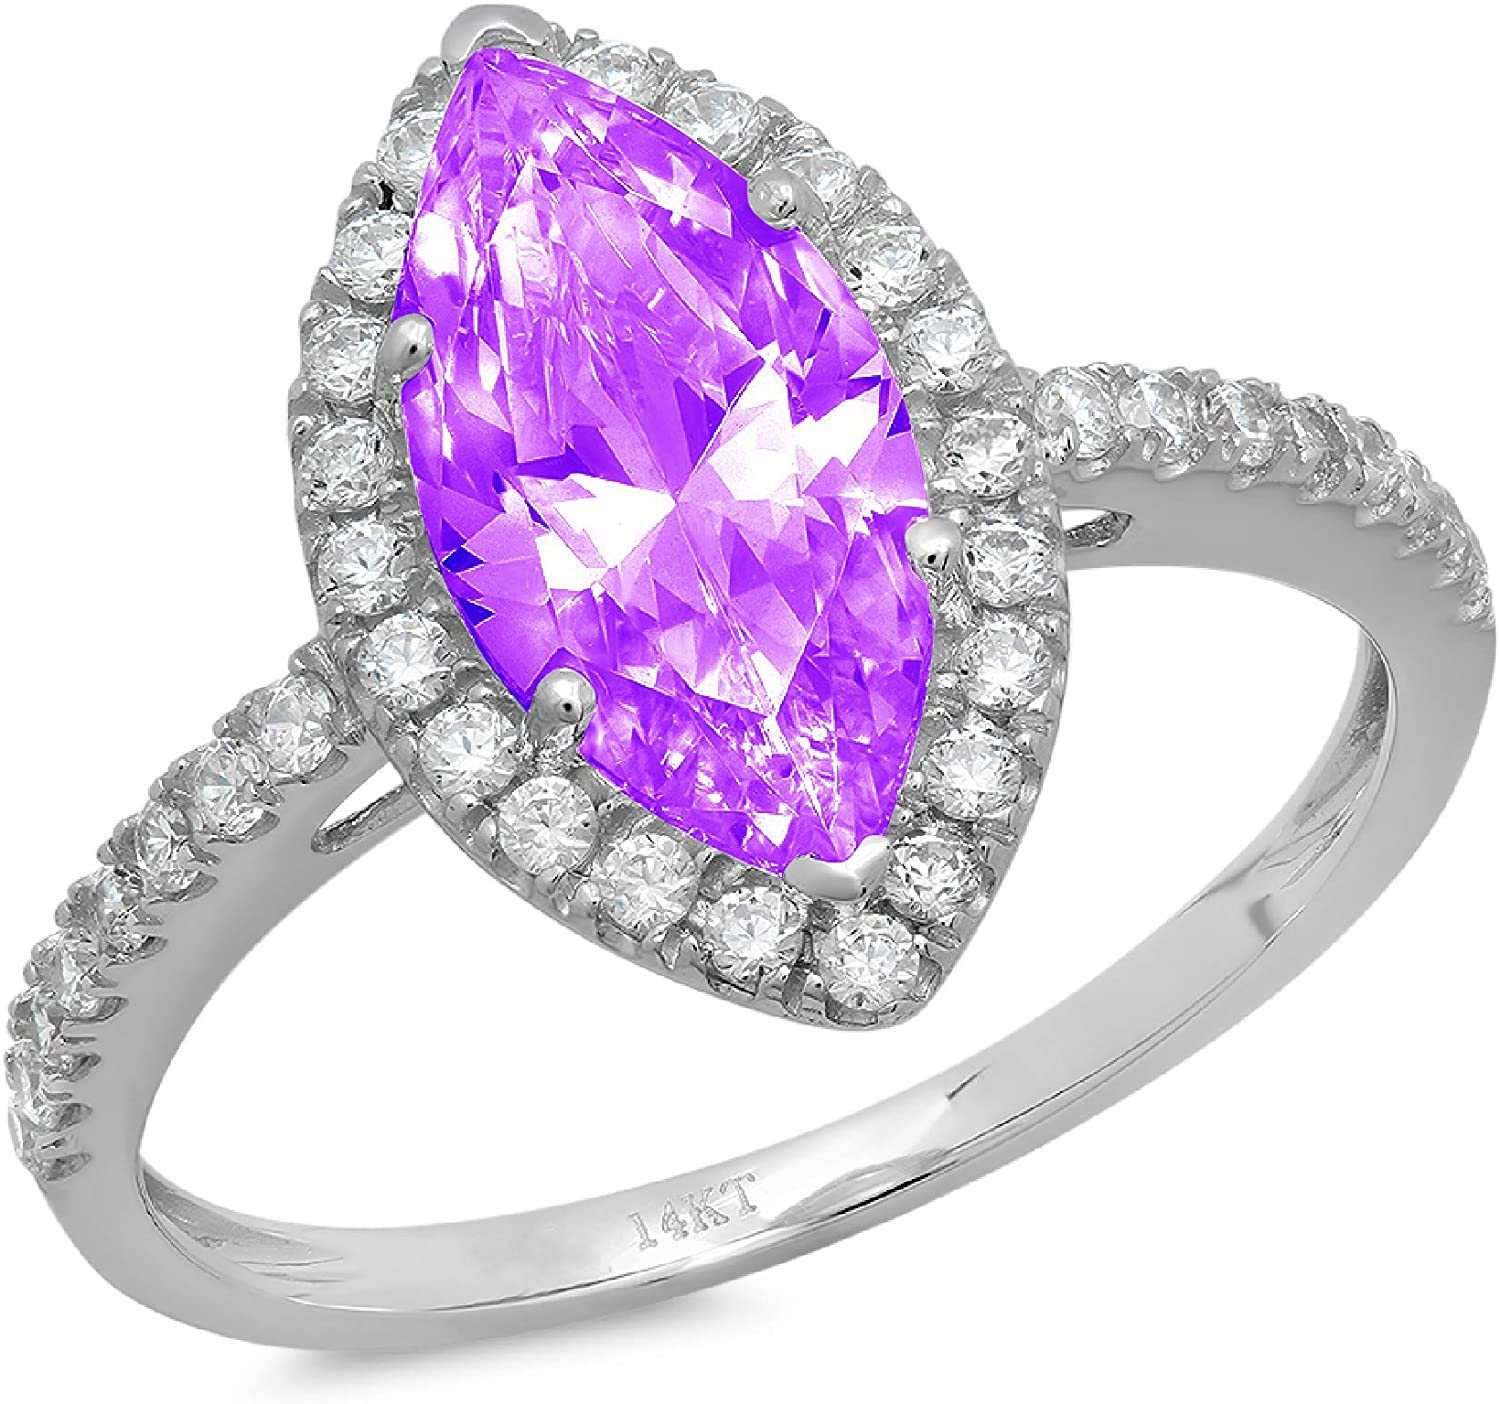 2.35ct Brilliant Marquise Cut Solitaire with Accent Halo Natural Purple Amethyst Gem Stone VVS1 Designer Modern Statement Ring Solid 14k White Gold Clara Pucci